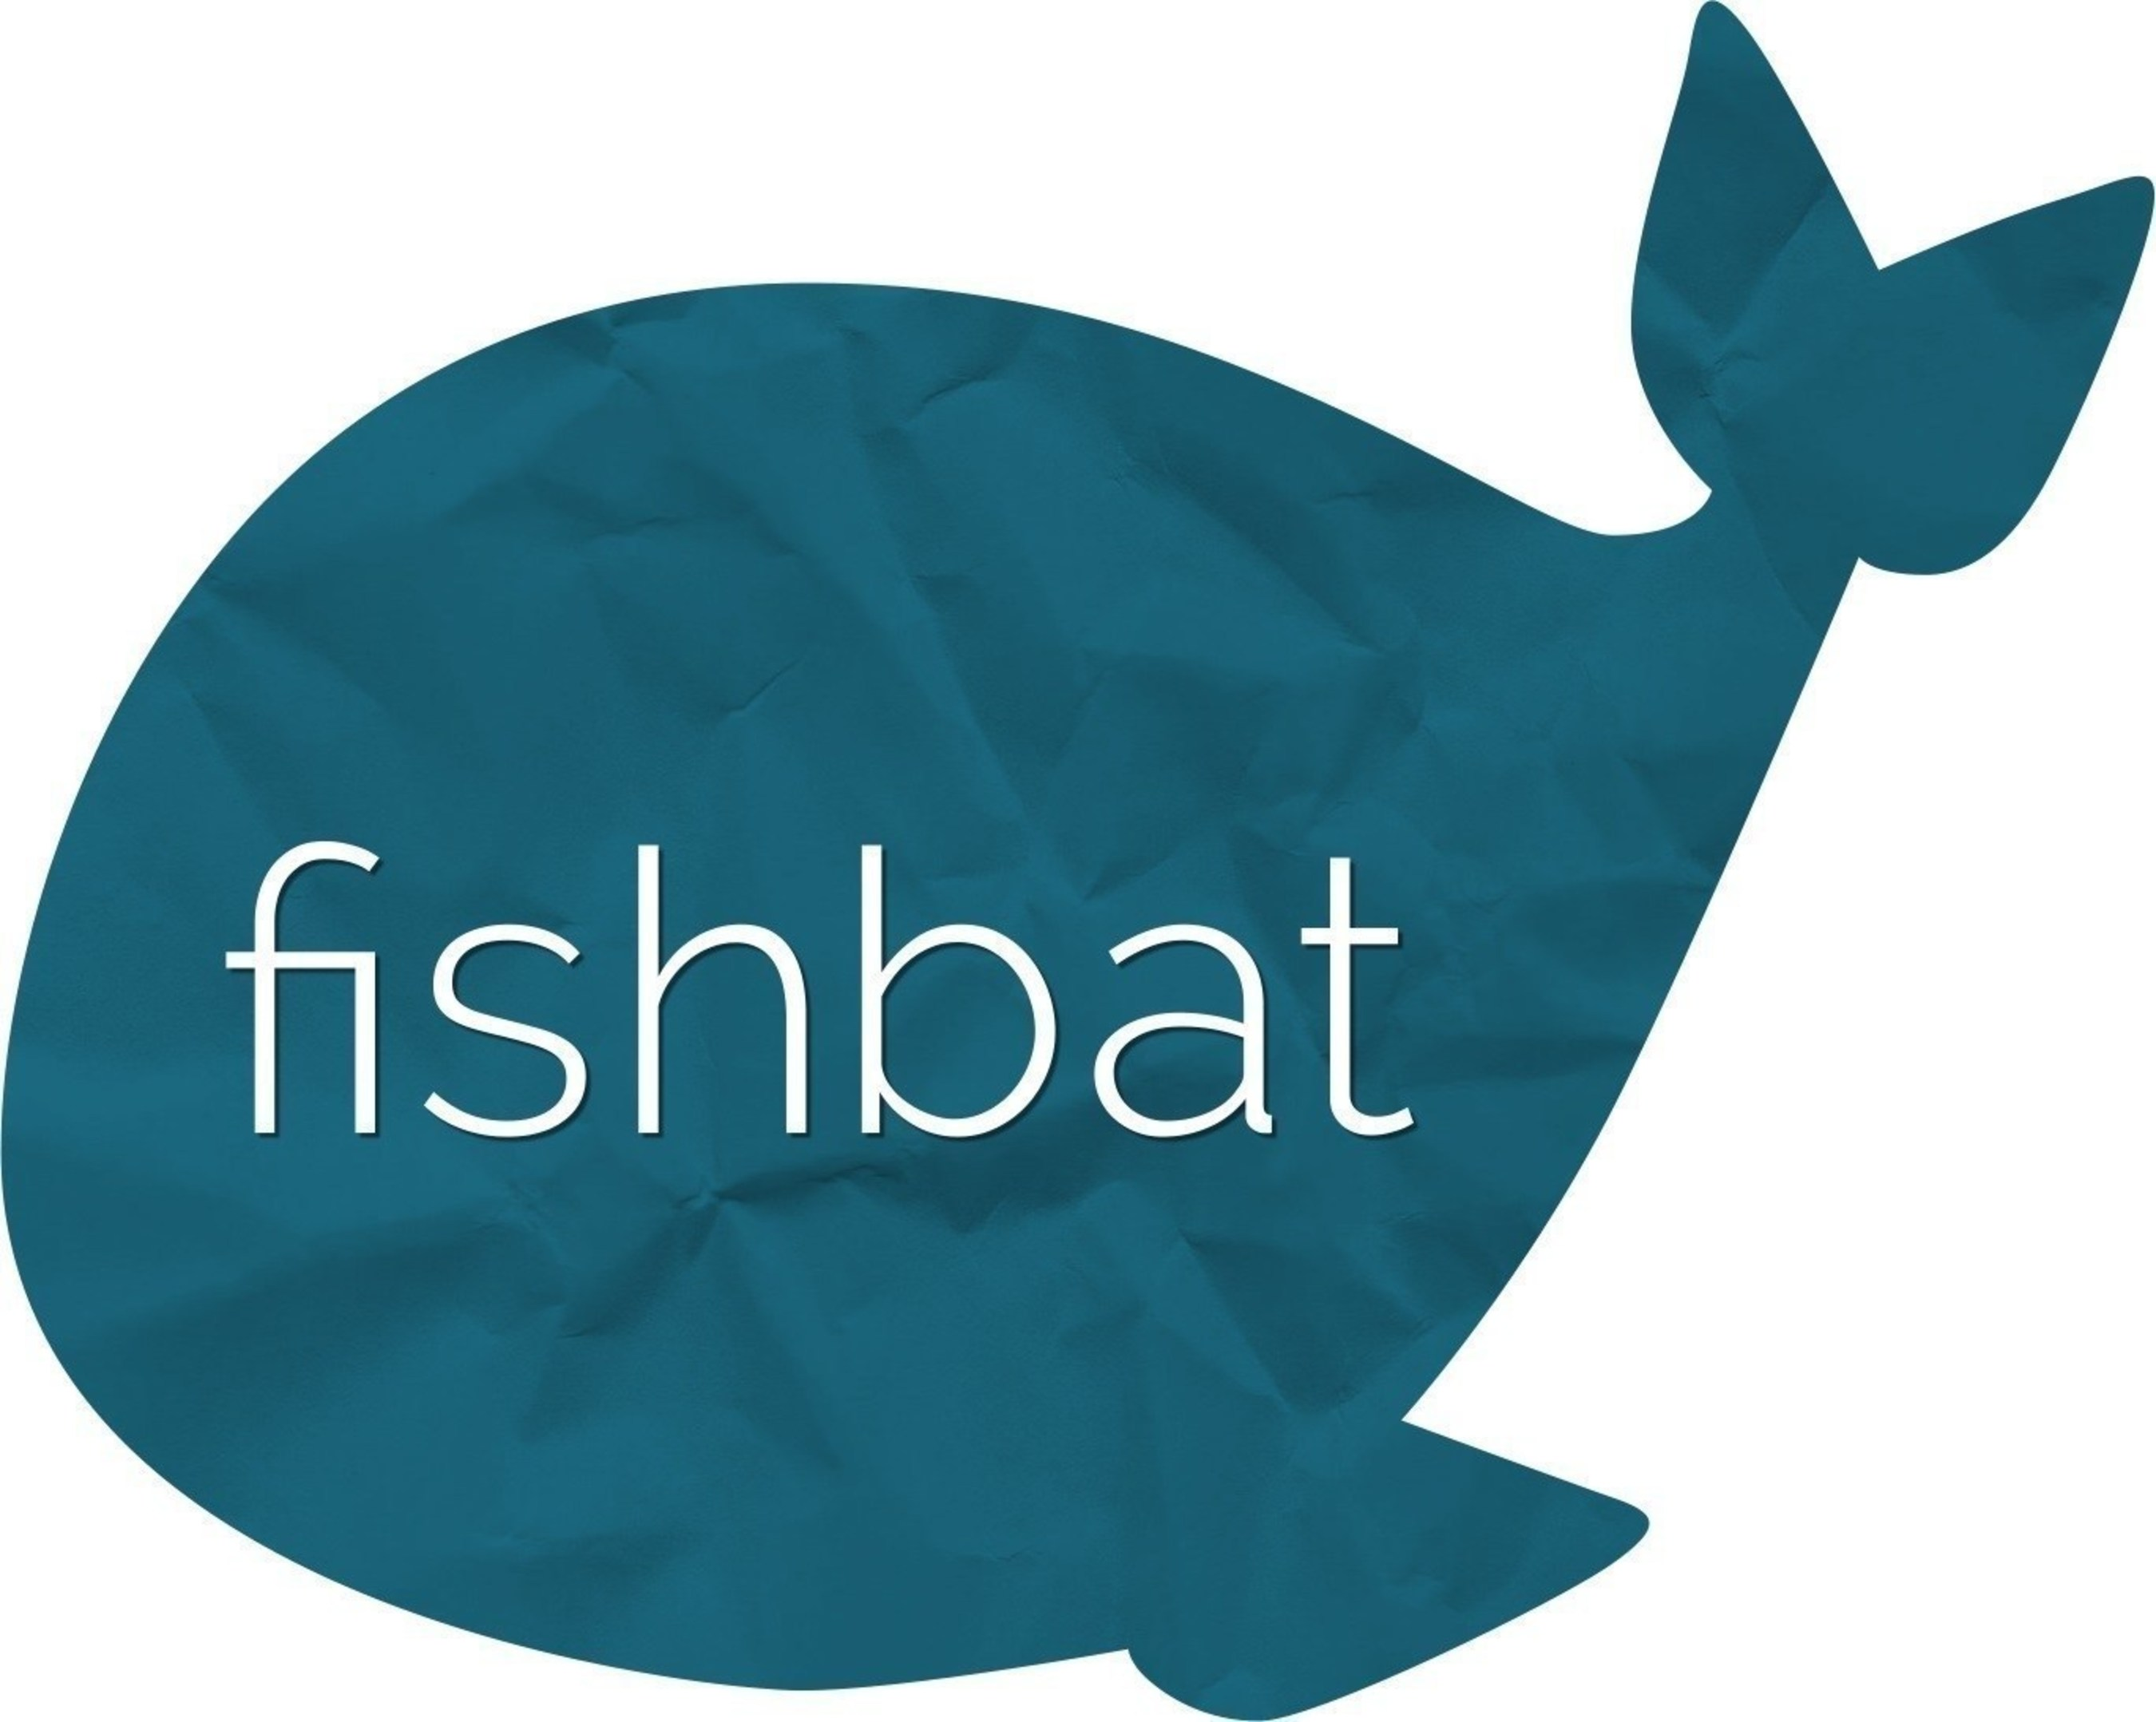 fishbat Shares 3 Steps for Improving Online Reputation Management